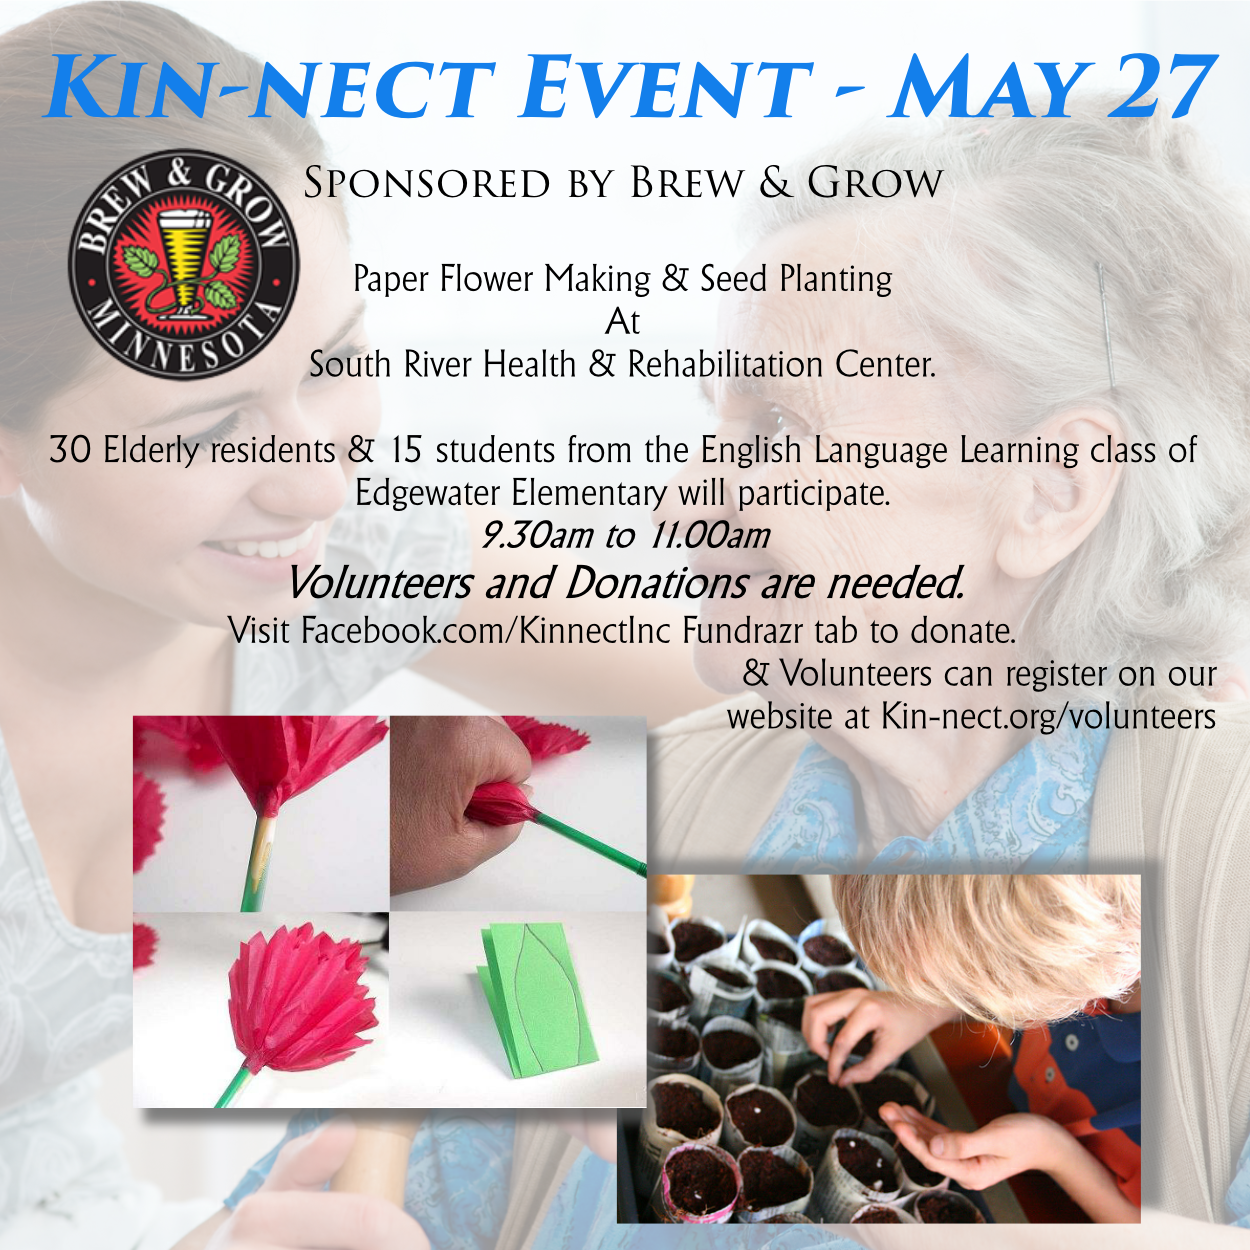 May 27 event - Paper flowers and seed planting, Kin-nect